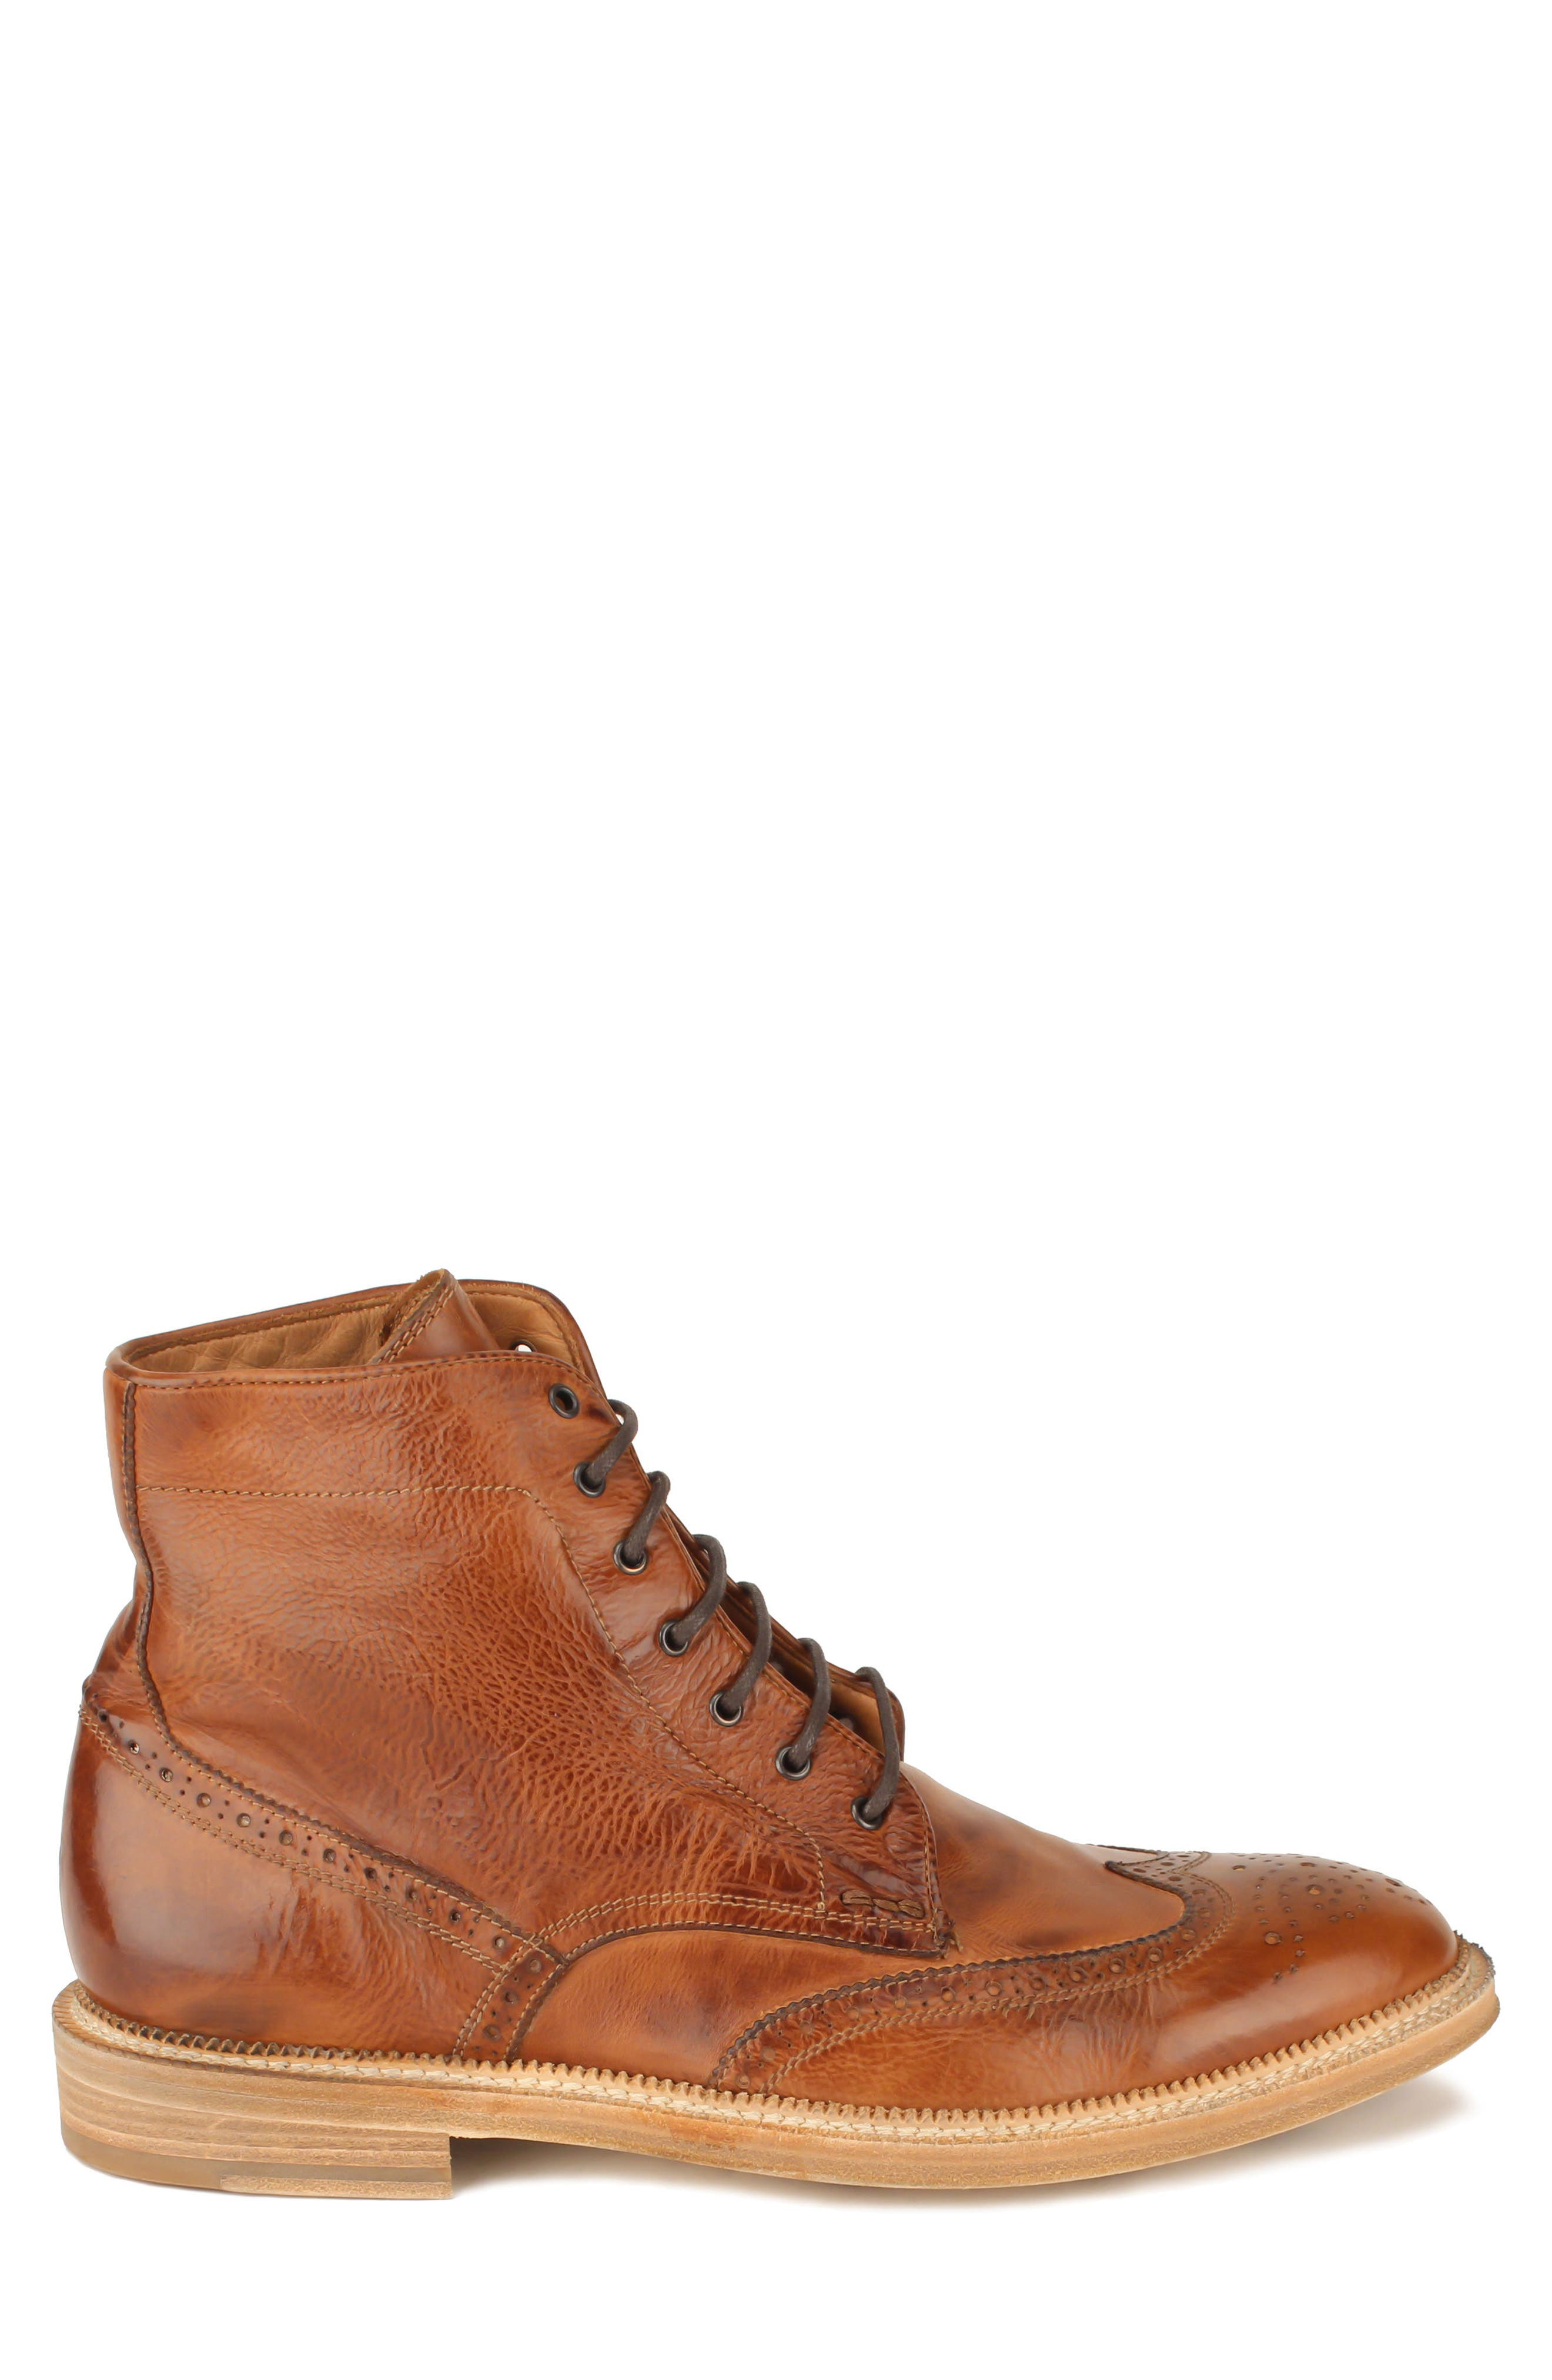 Max Wingtip Boot,                             Alternate thumbnail 3, color,                             WALNUT LEATHER